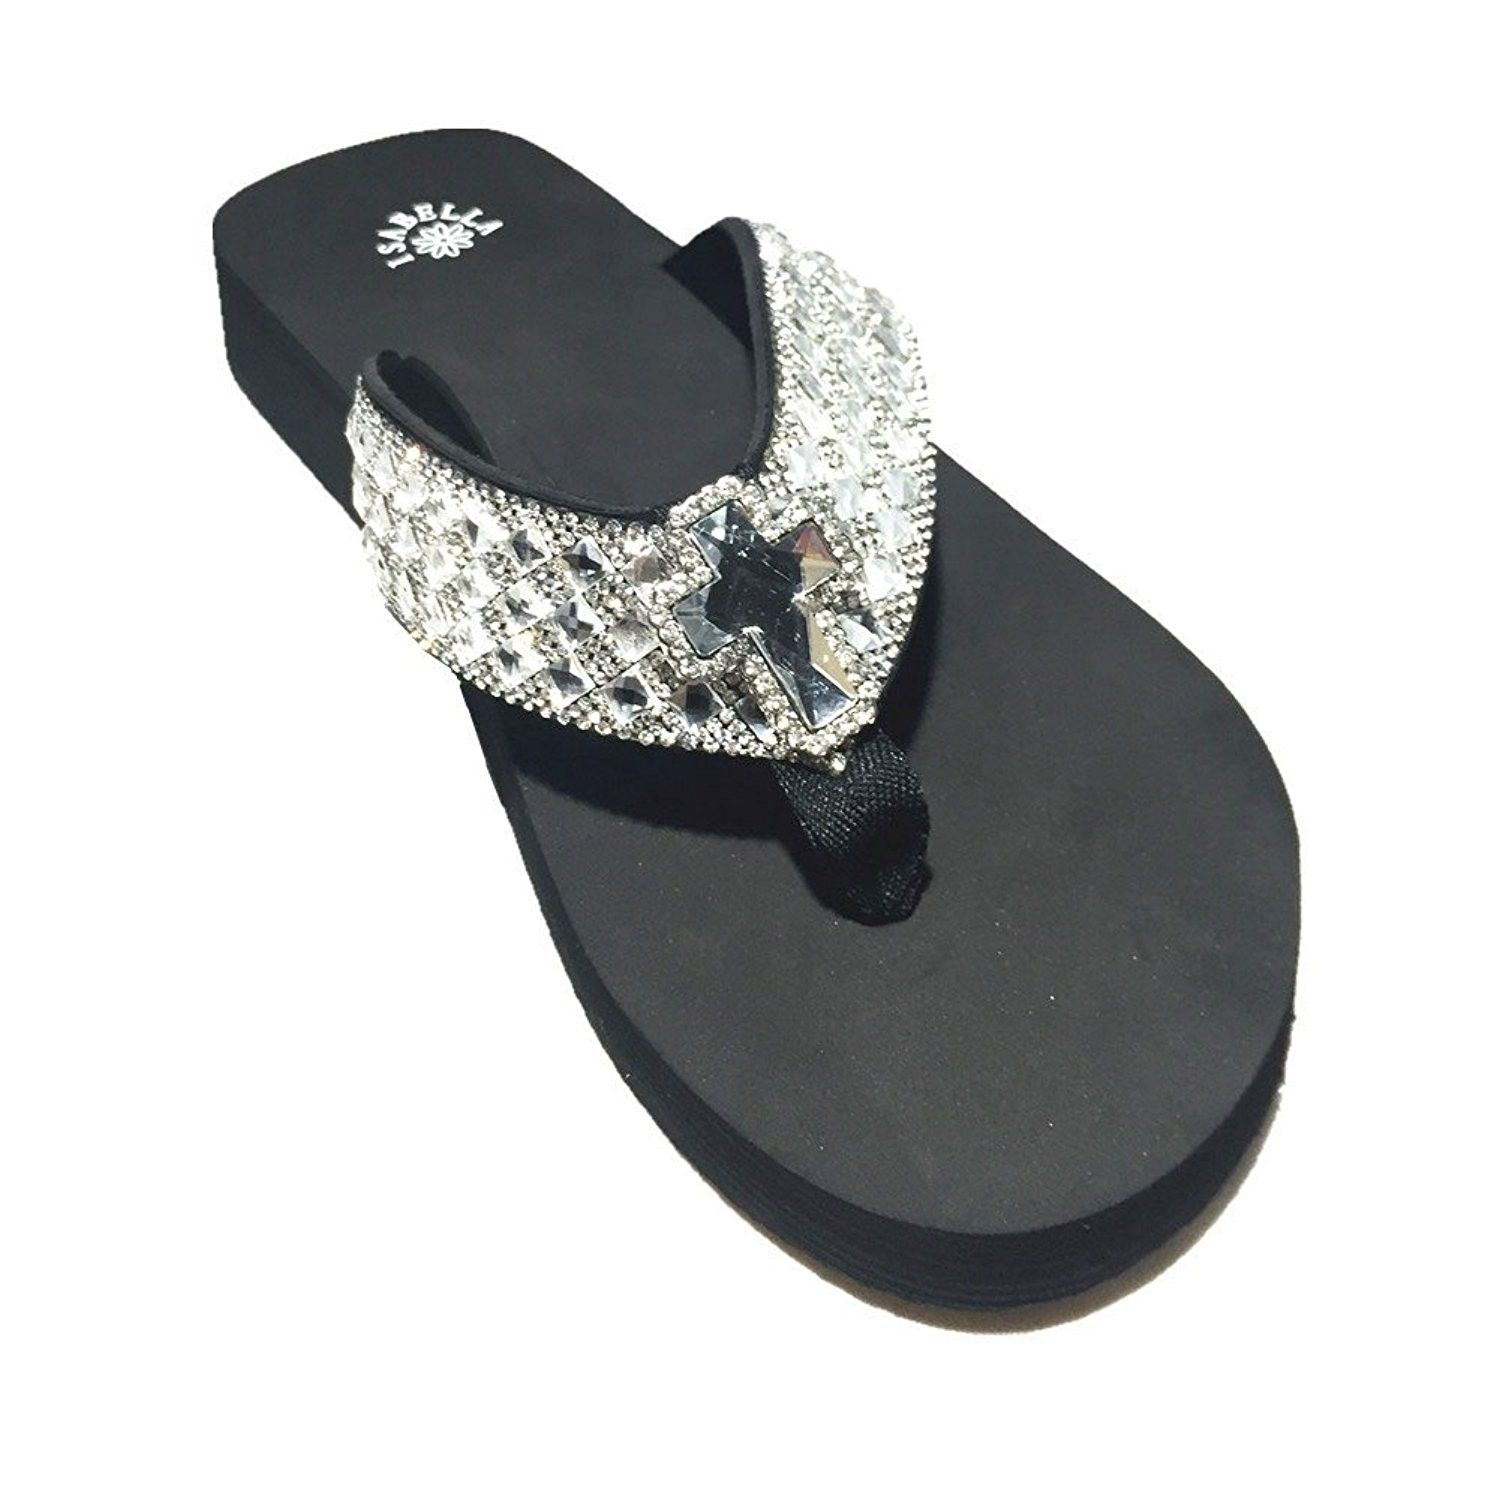 fb24bd58af Women's Shoes, Sandals, Flip-Flops, Premium Western Rhinestone Cross Concho  BlingBling Flip Flops in 4 Sizes S053 - CR183MQ4SEX #fashion #style  #womenshoes ...